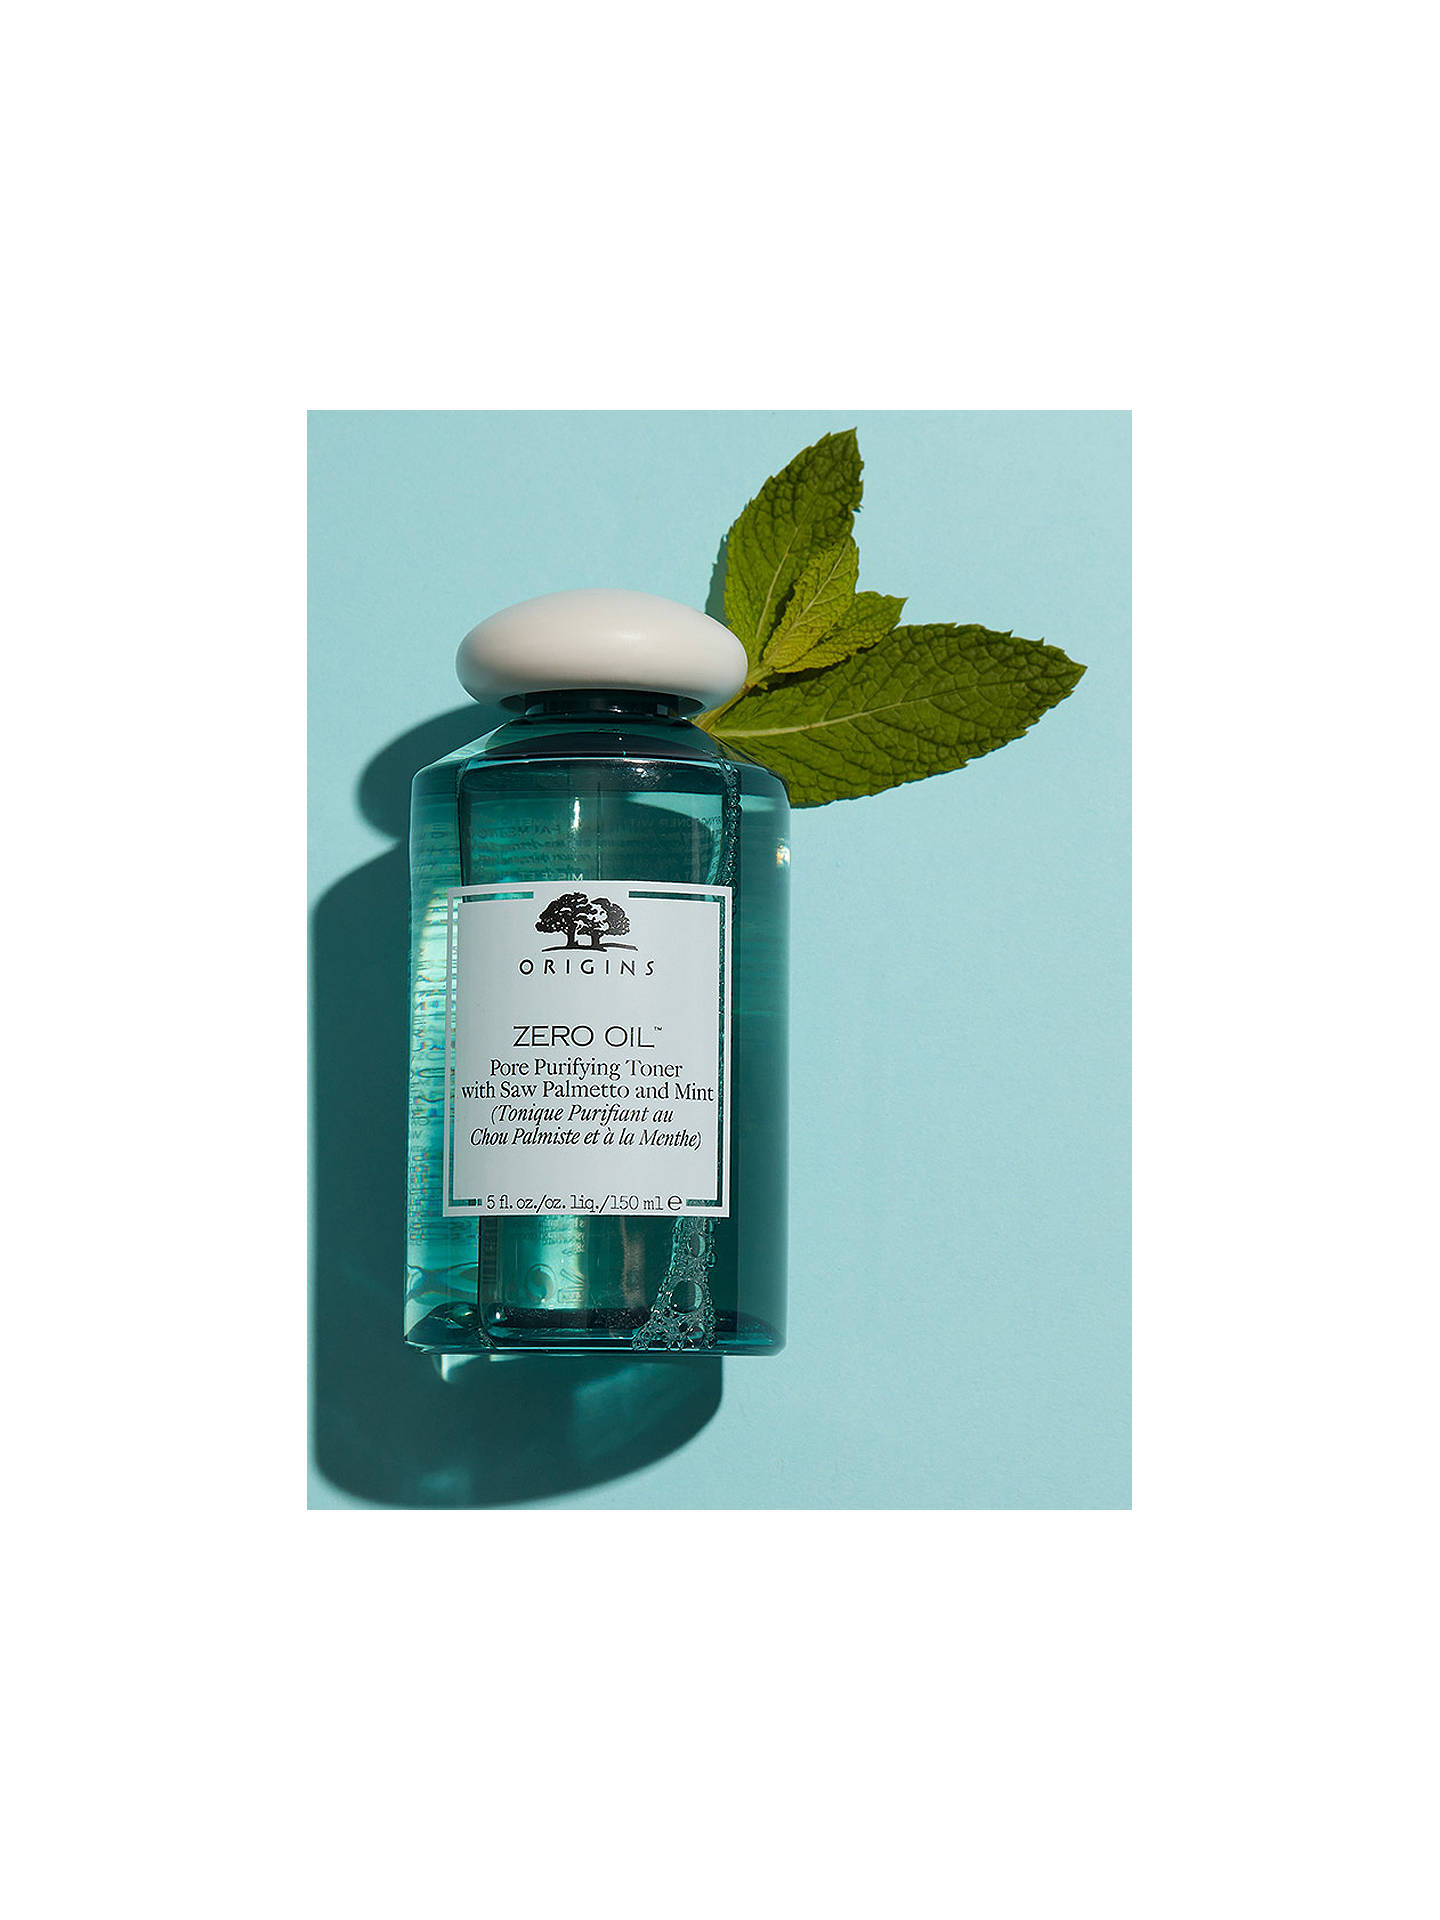 Buy Origins Zero Oil™ Pore Purifying Toner with Saw Palmetto and Mint, 150ml Online at johnlewis.com